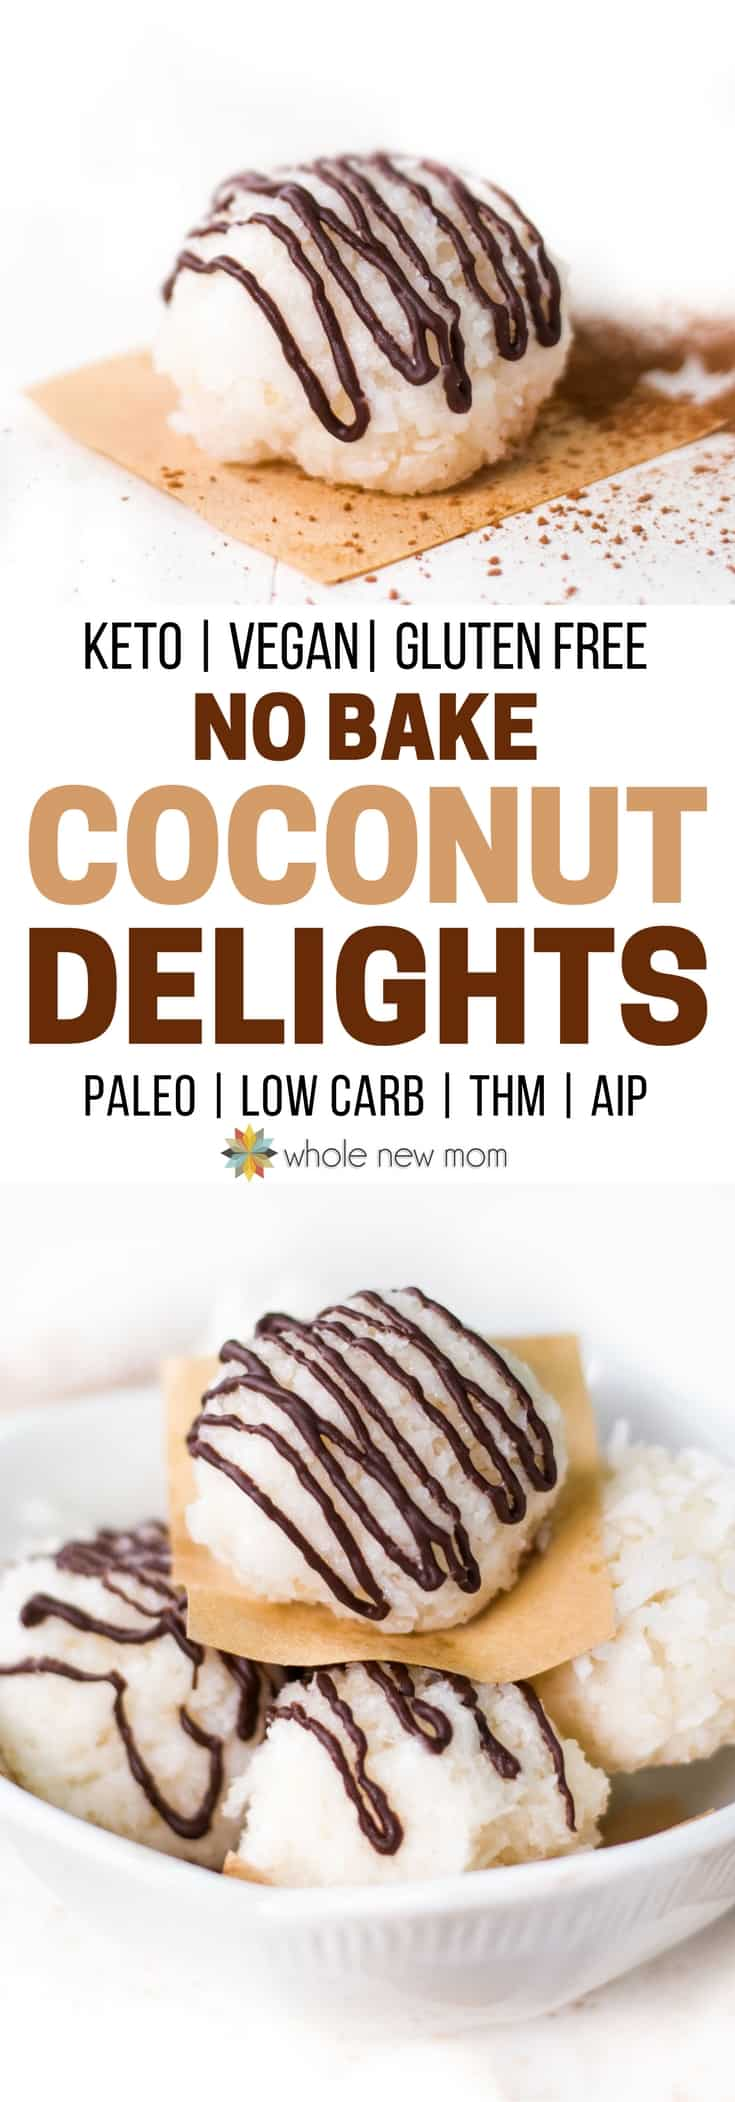 These No Bake Coconut Cookies are our go to when we need a treat on the fly!  They come together super quick and are loaded with healthy ingredients. Plus they're paleo, low carb, keto, and sugar-free! #vegan #keto #THM #lowcarb #AIP #healthy #glutenfree